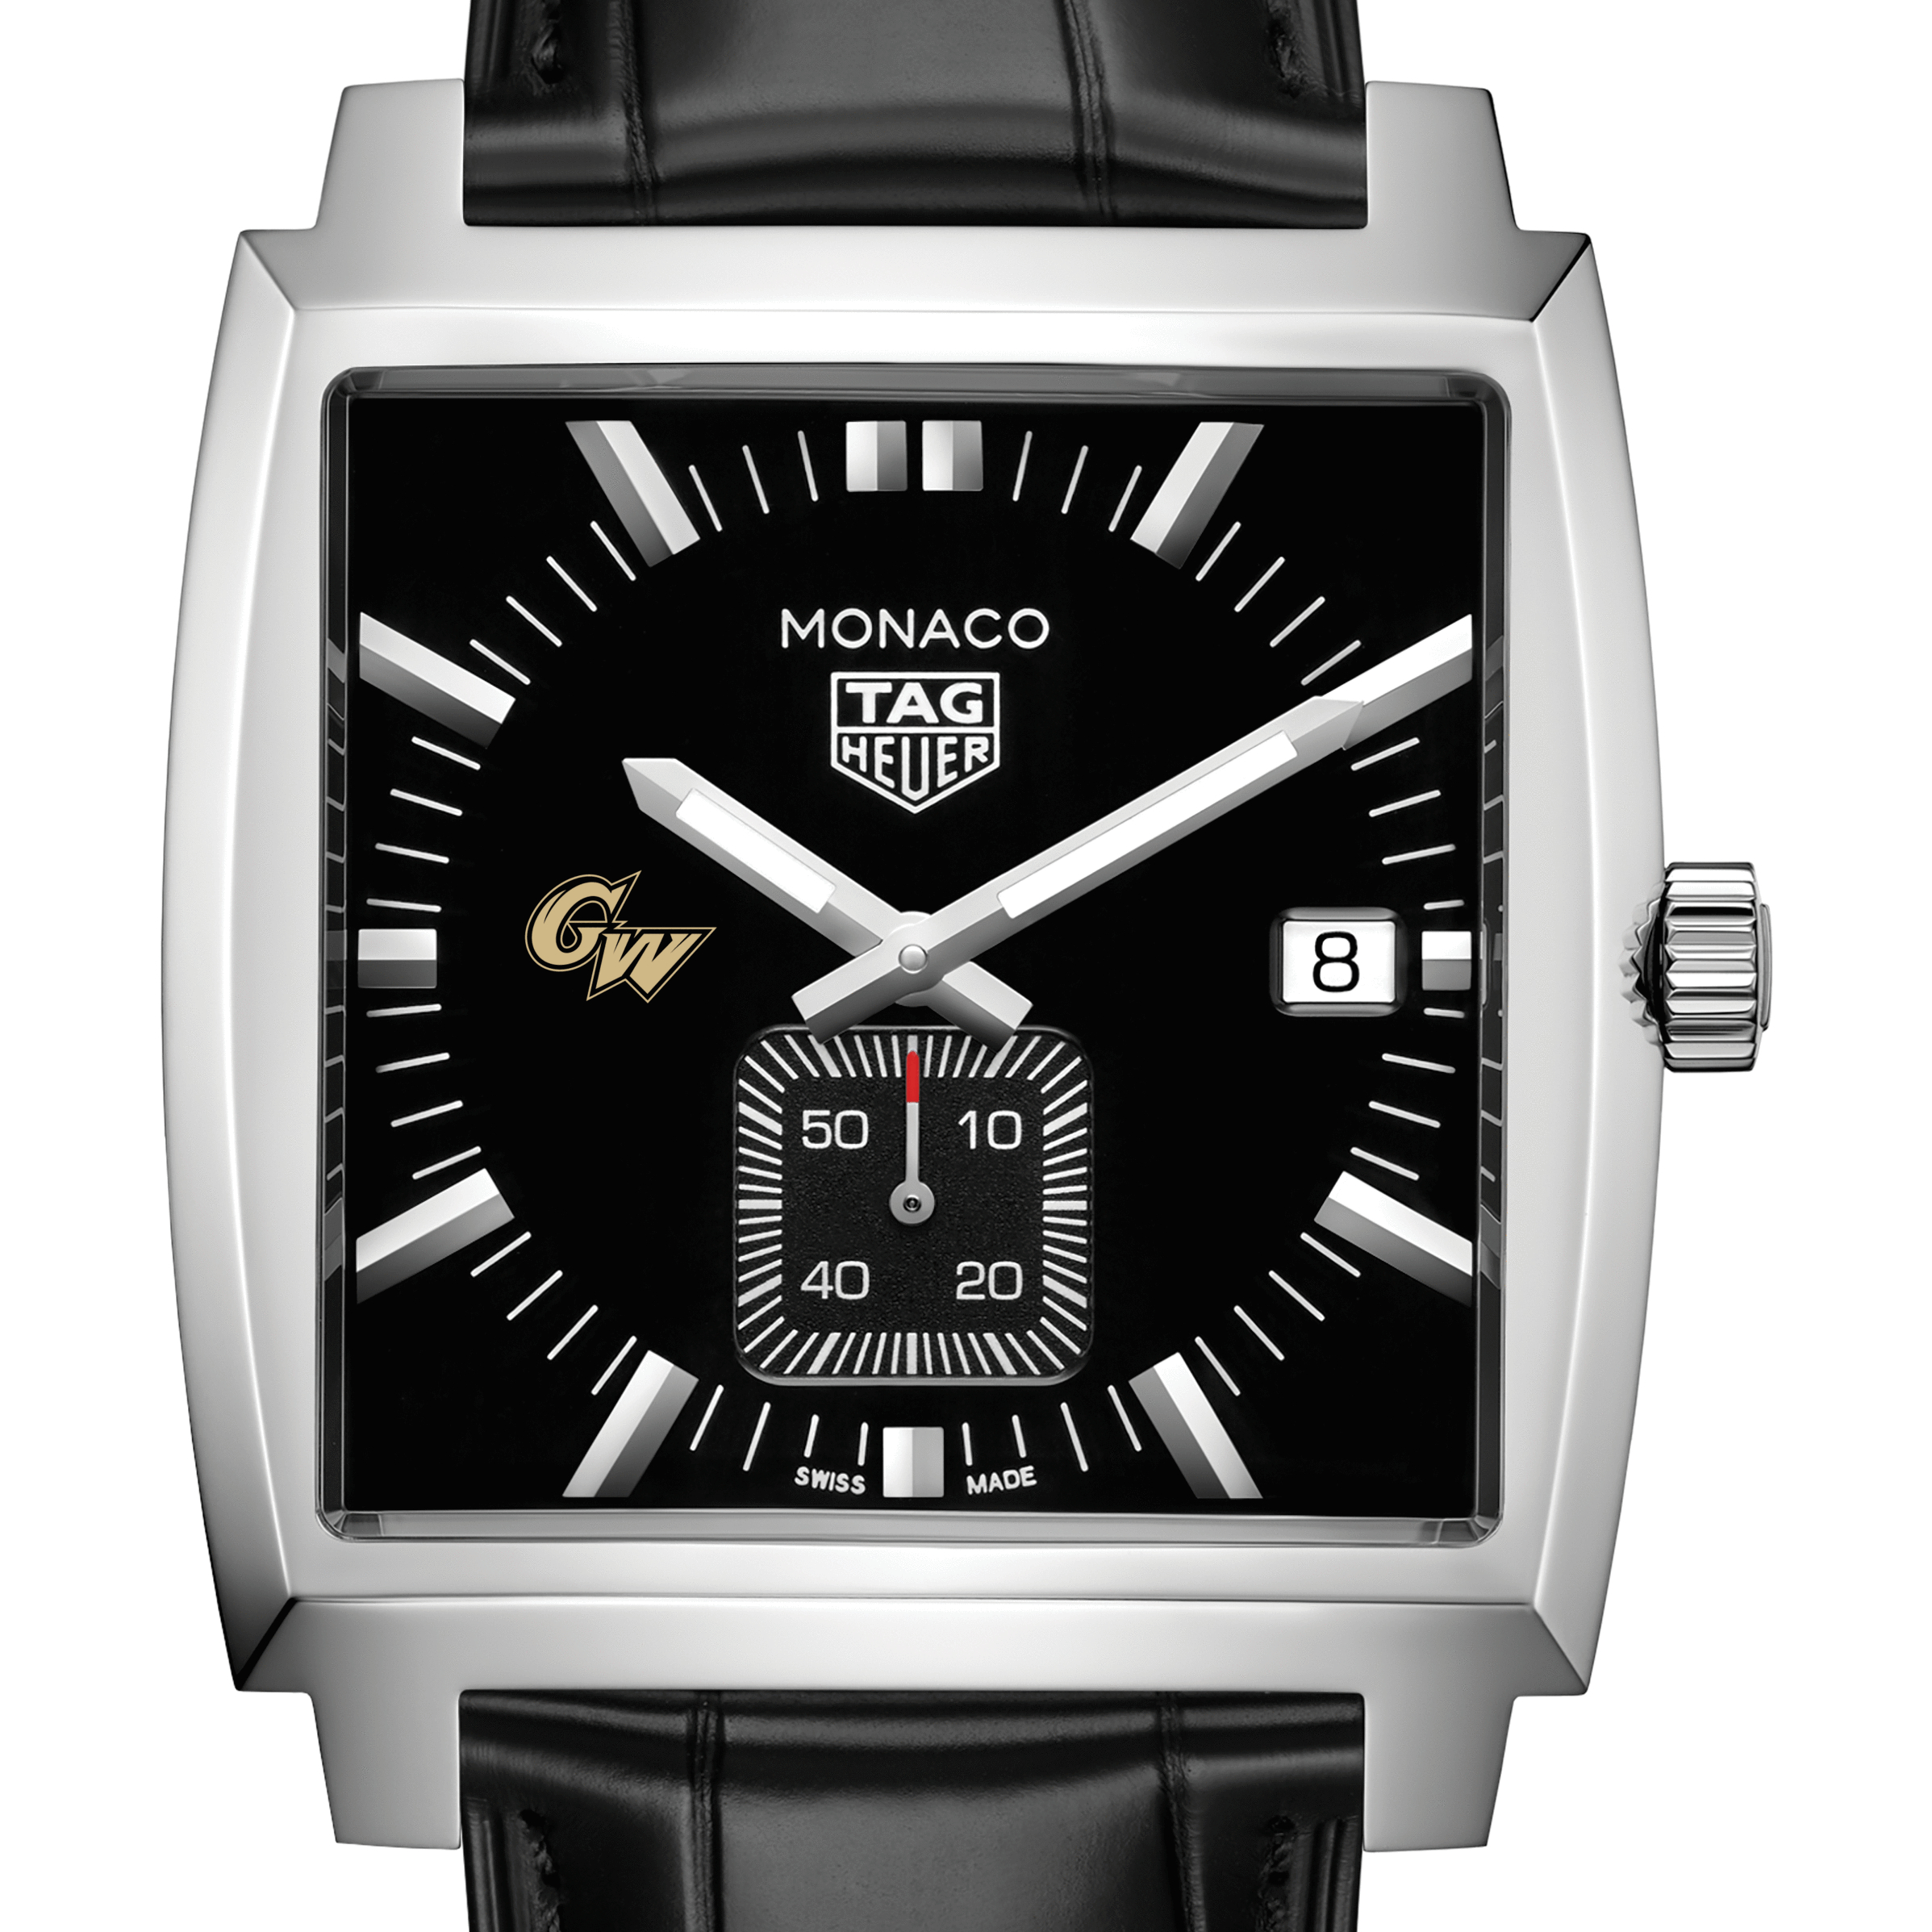 George Washington University TAG Heuer Monaco with Quartz Movement for Men